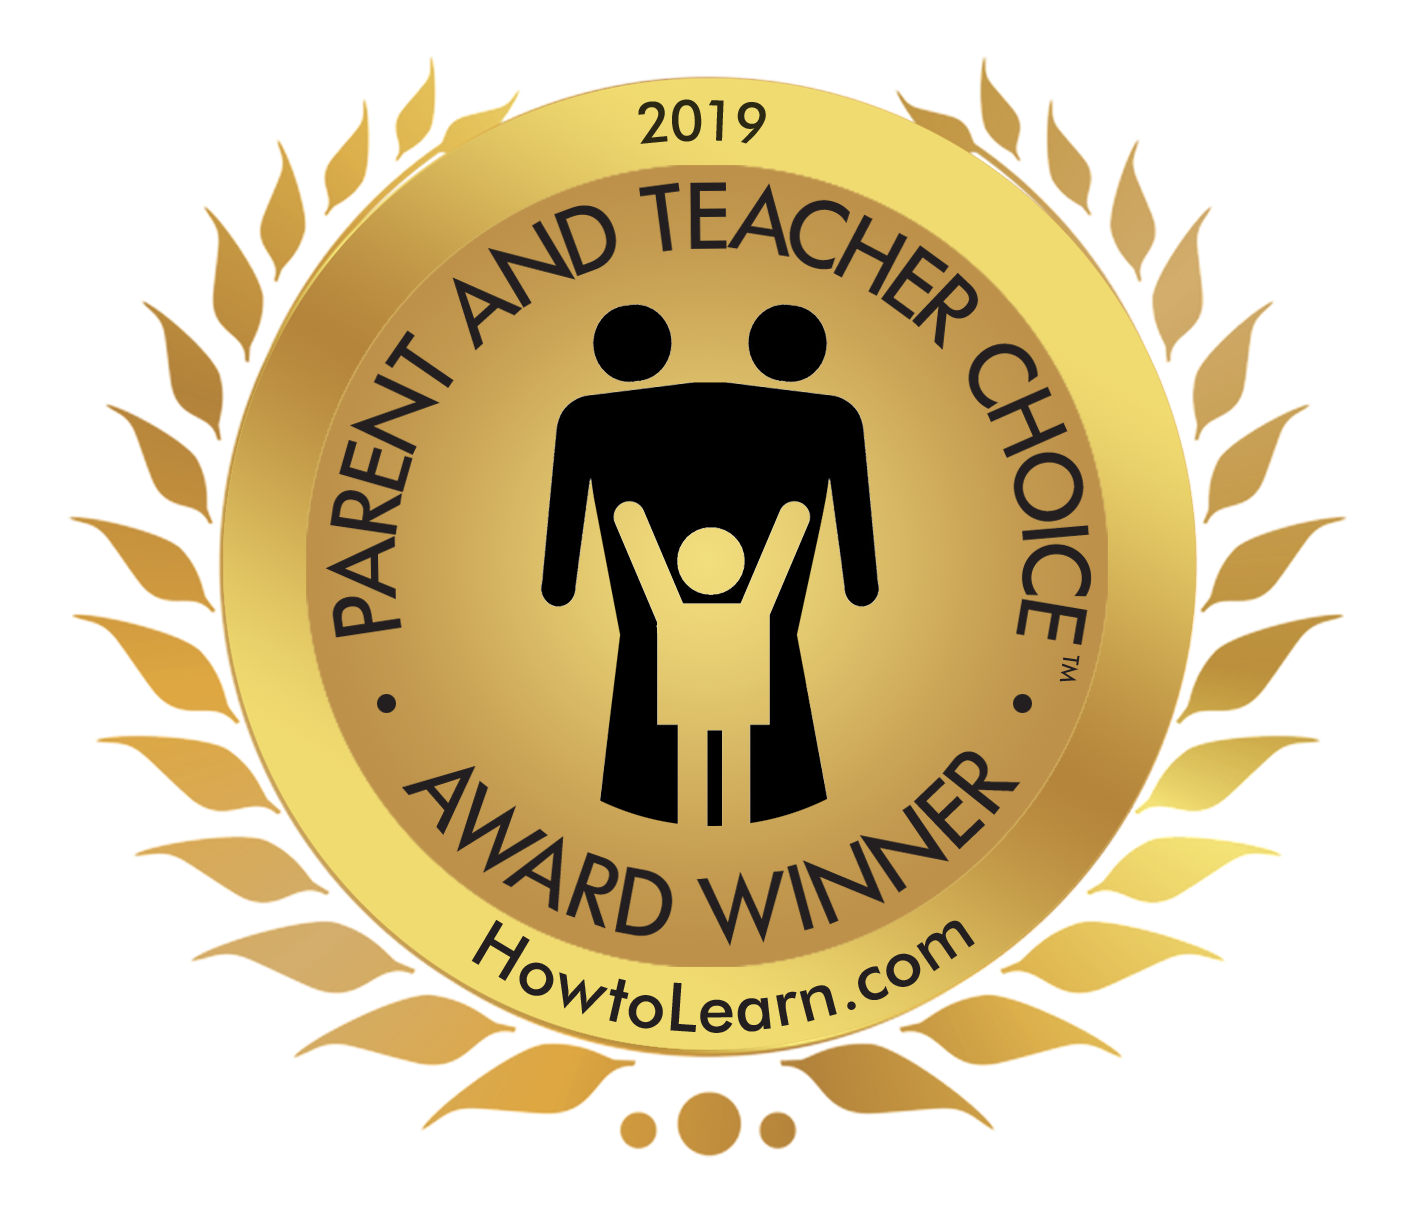 HowToLearn's 2019 Parent and Teacher award